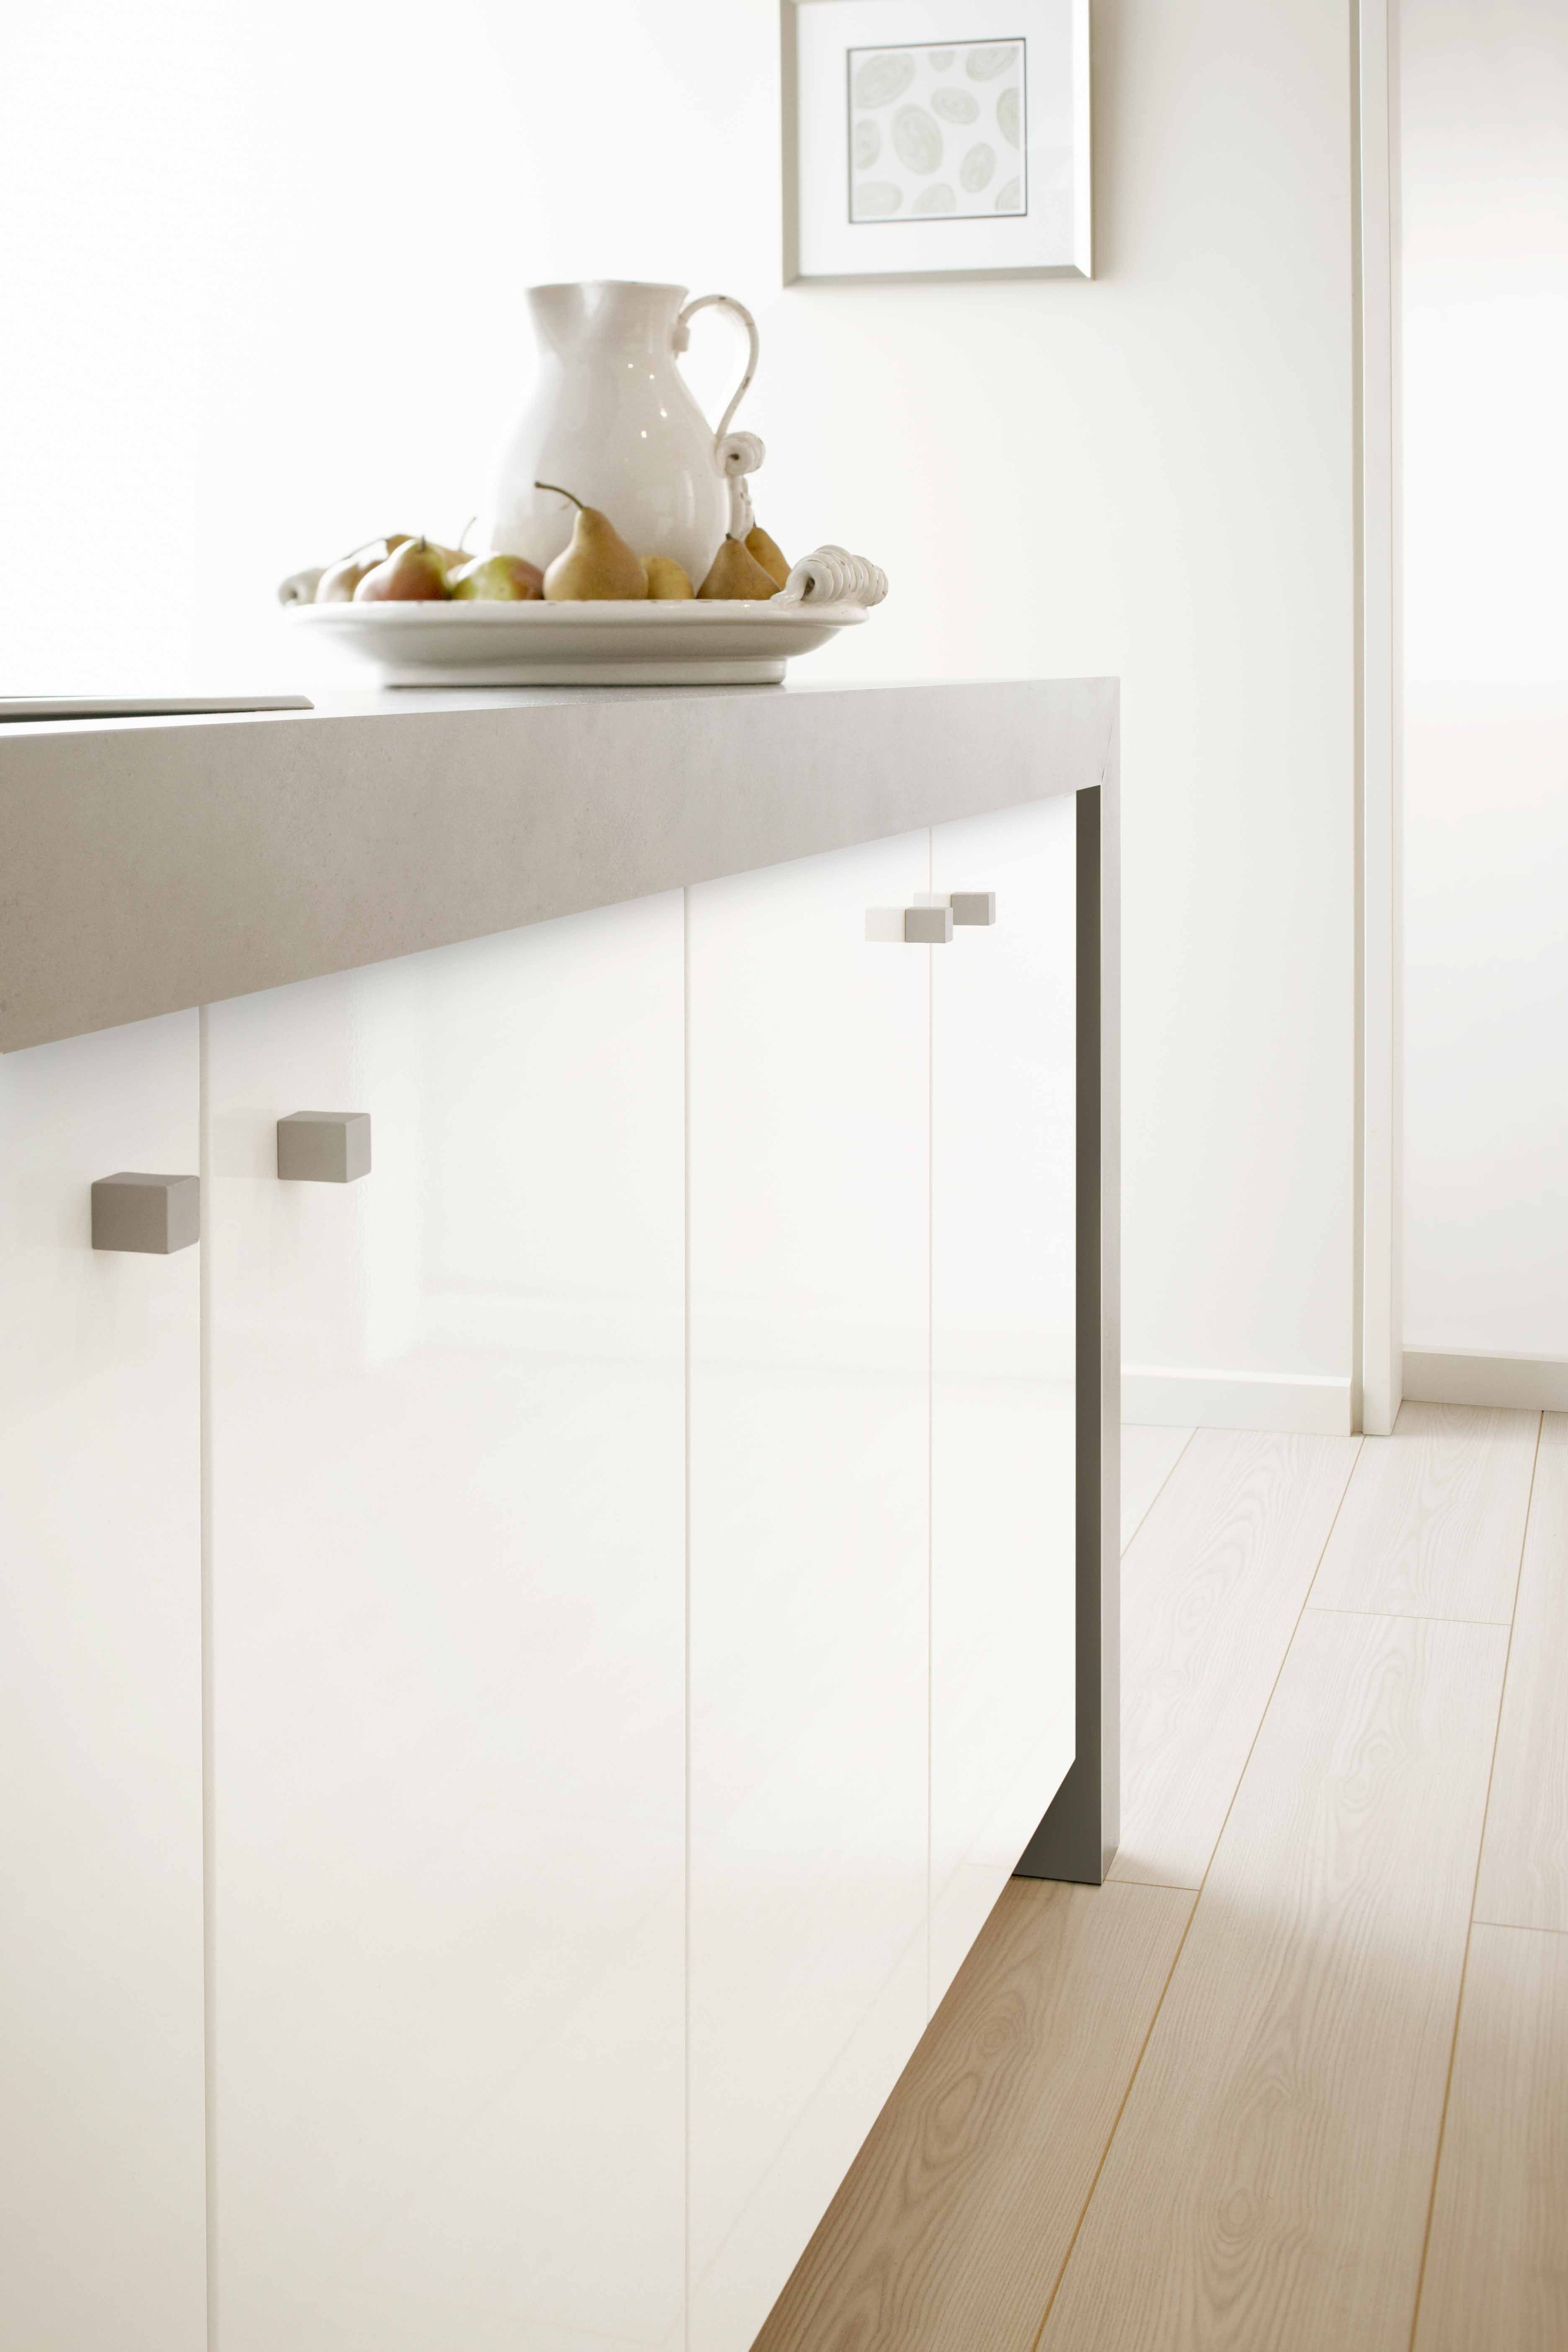 Laundry Formica Vinyl Doors (Bevelled Edge Pro) Warm White, And